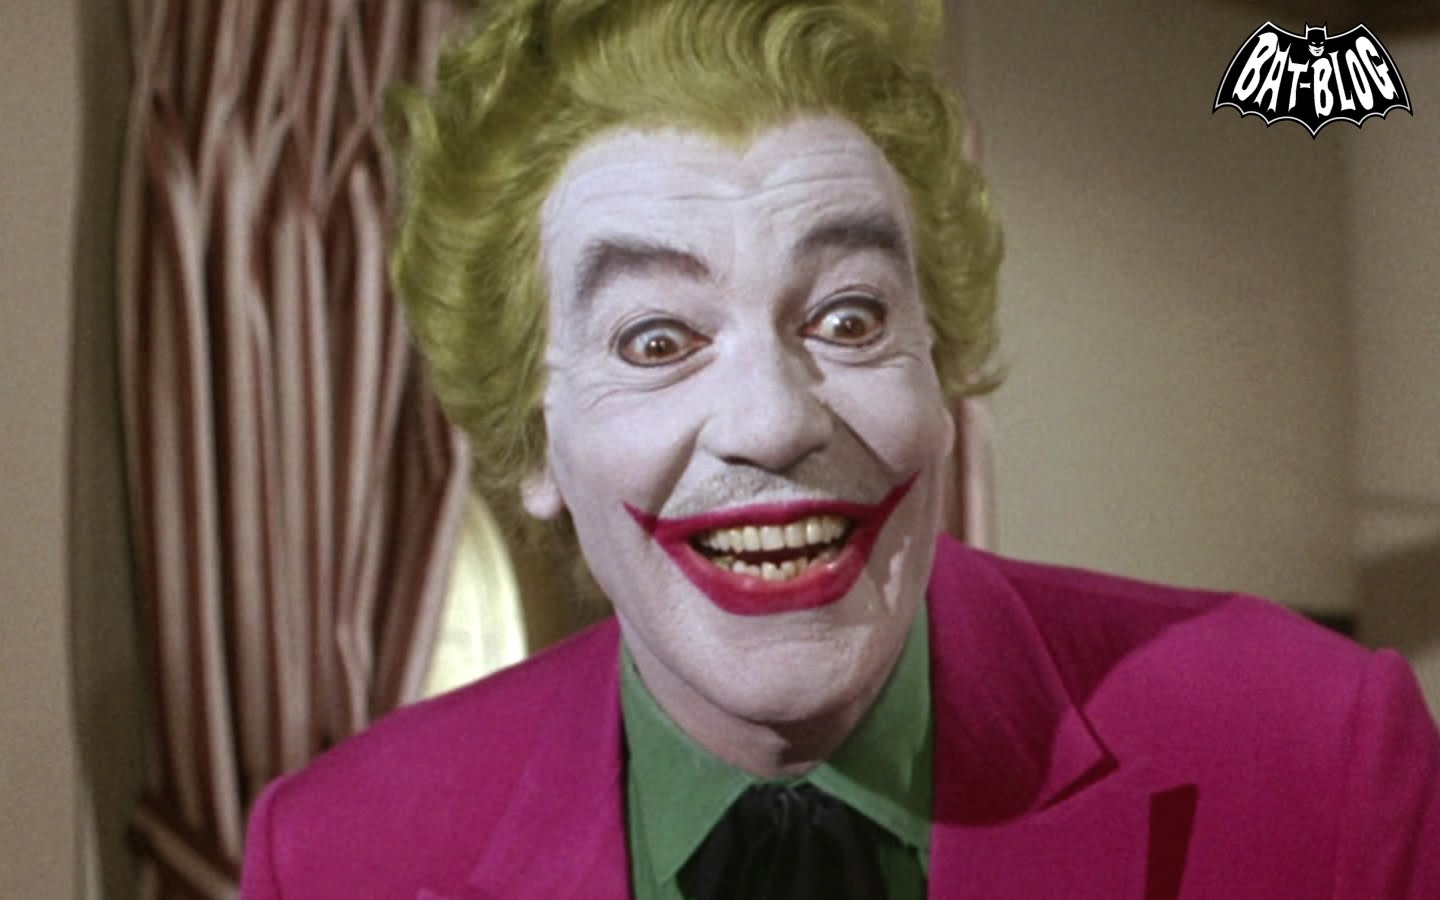 1440-x-900-cesar-romero-joker-batman-1966-movie